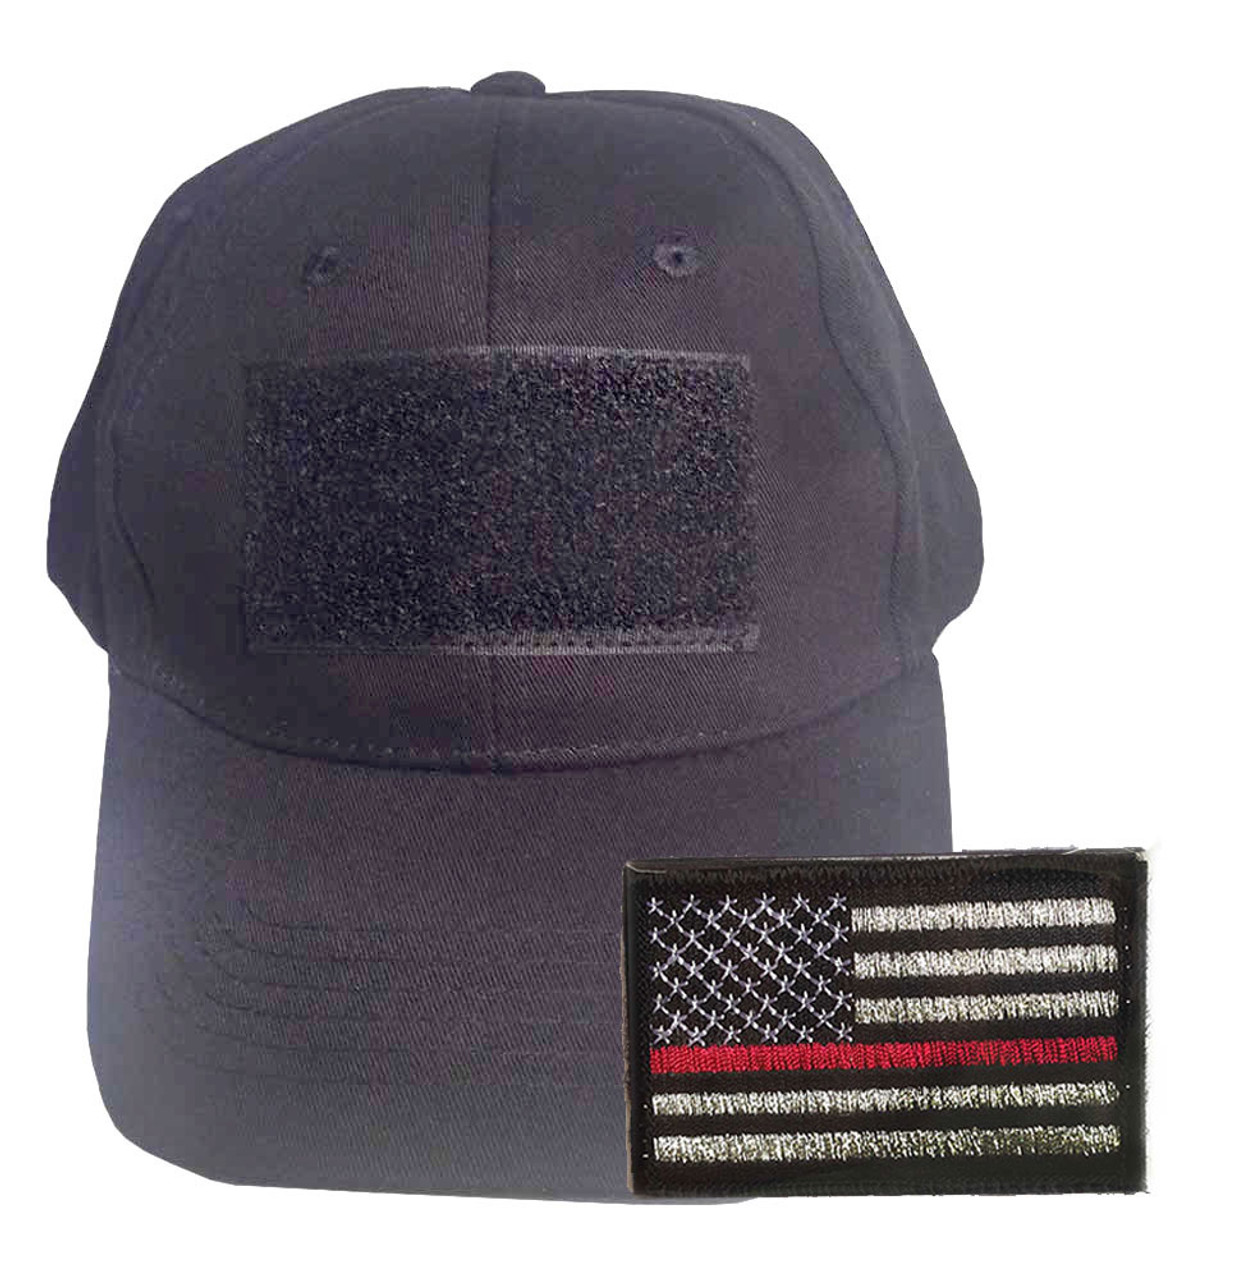 Black Tactical Cap with Velcro Comes With Thin RedLineAmerican Flag Velcro  Patch 452180e08eb